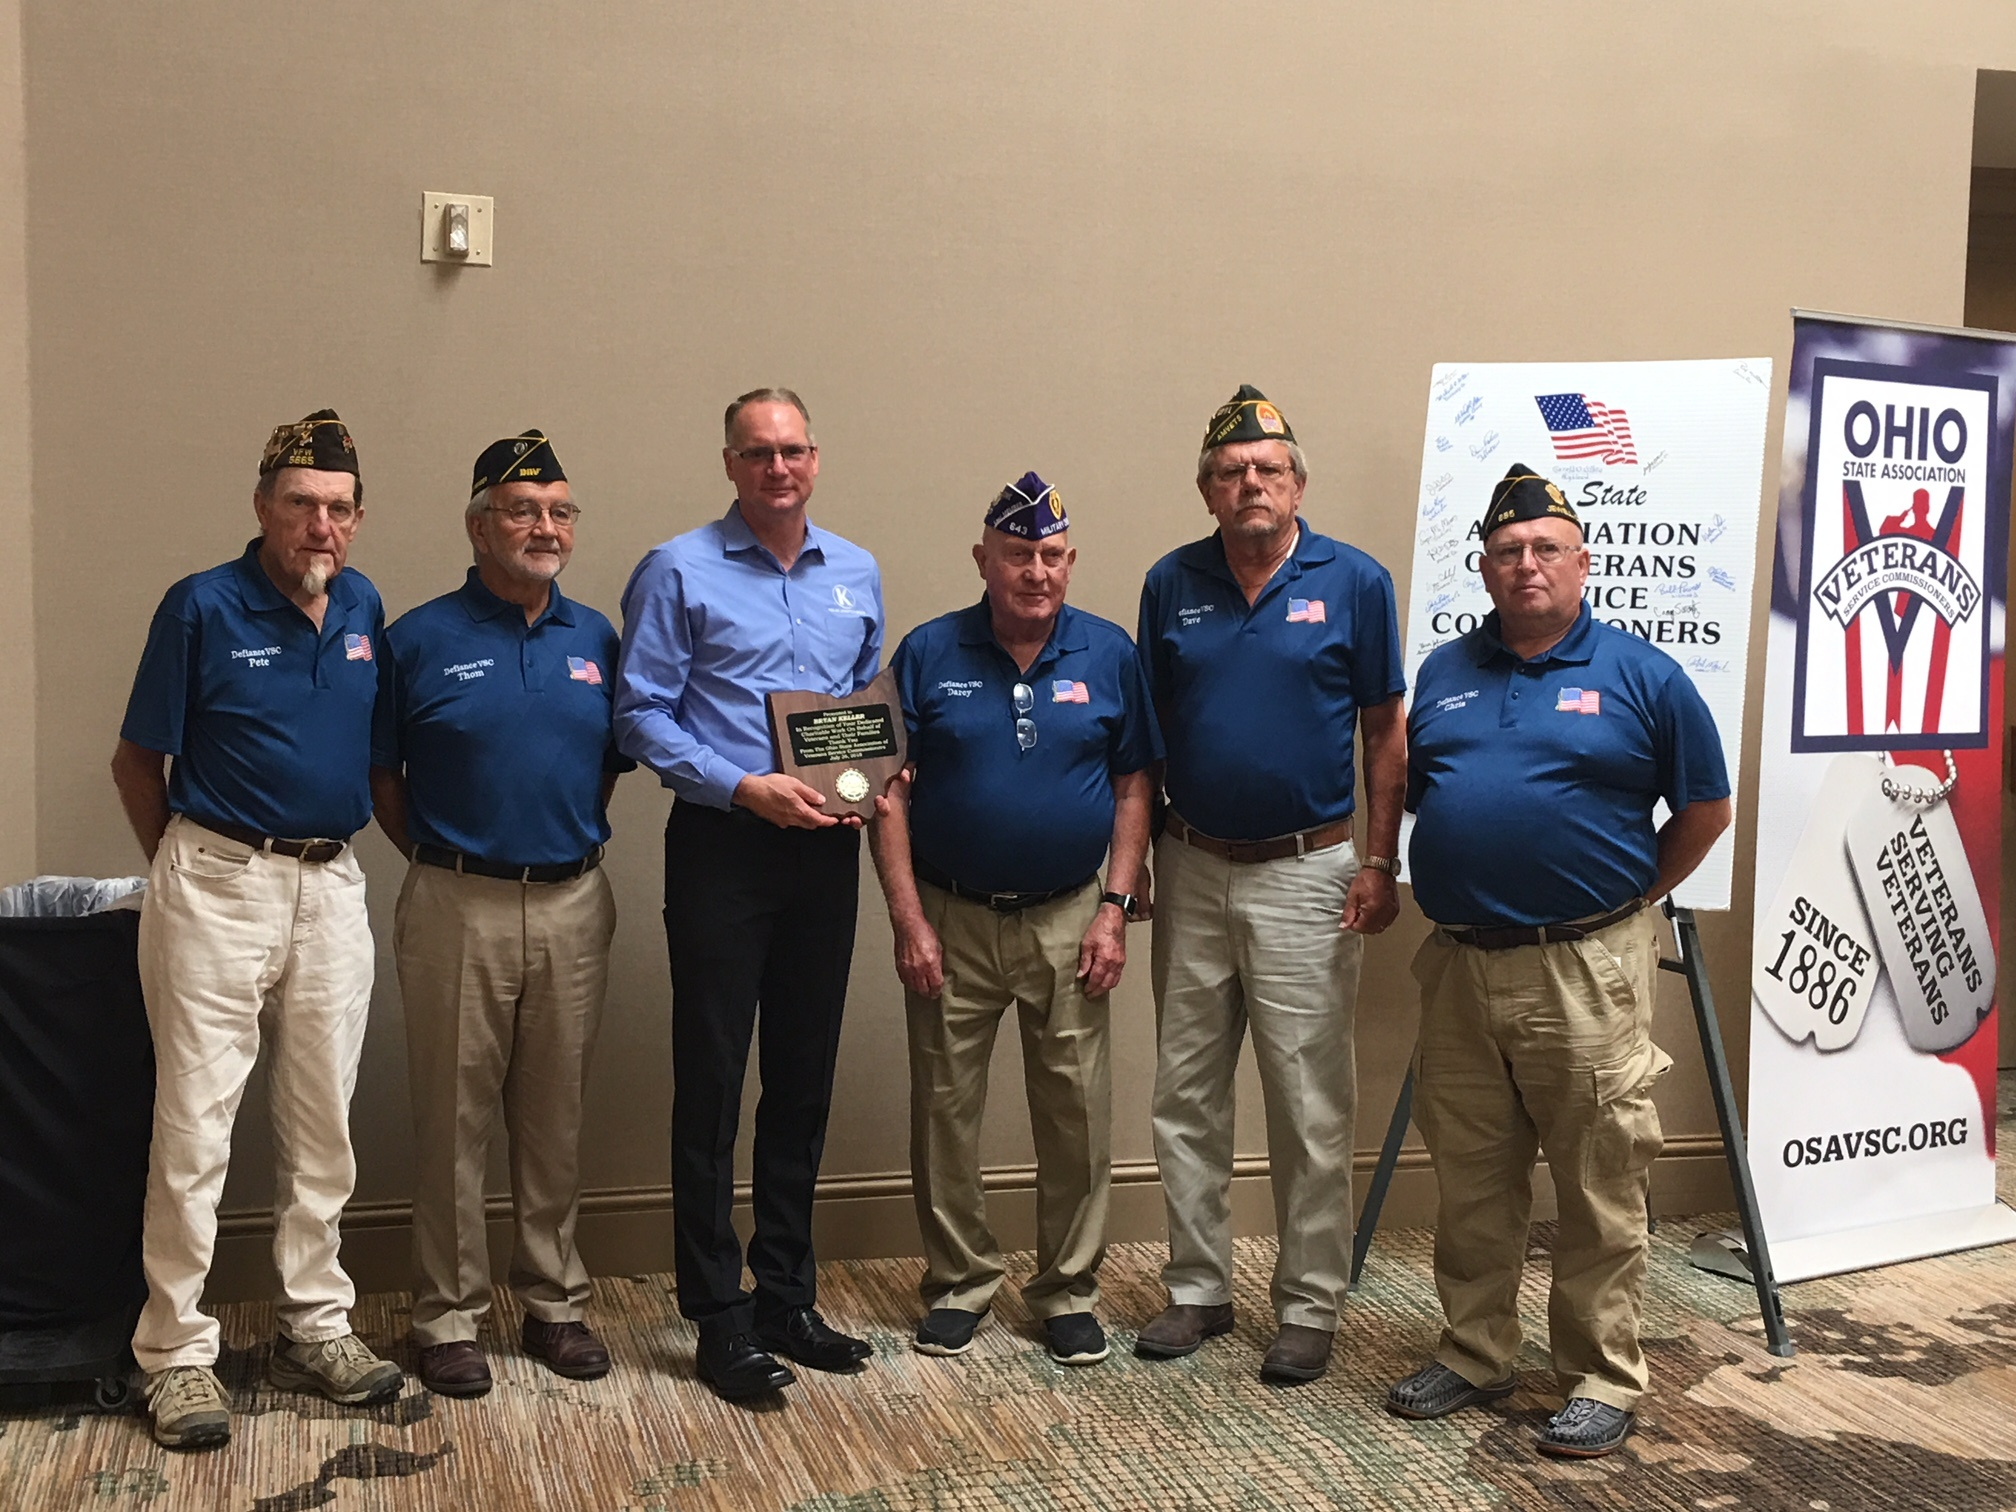 Bryan Keller pictured with Ohio State Veterans Service Commissioners: Peter Kenner, Thomas Kent, Darcy Lehman, Dave Lulfs, Chris Newton - receiving award